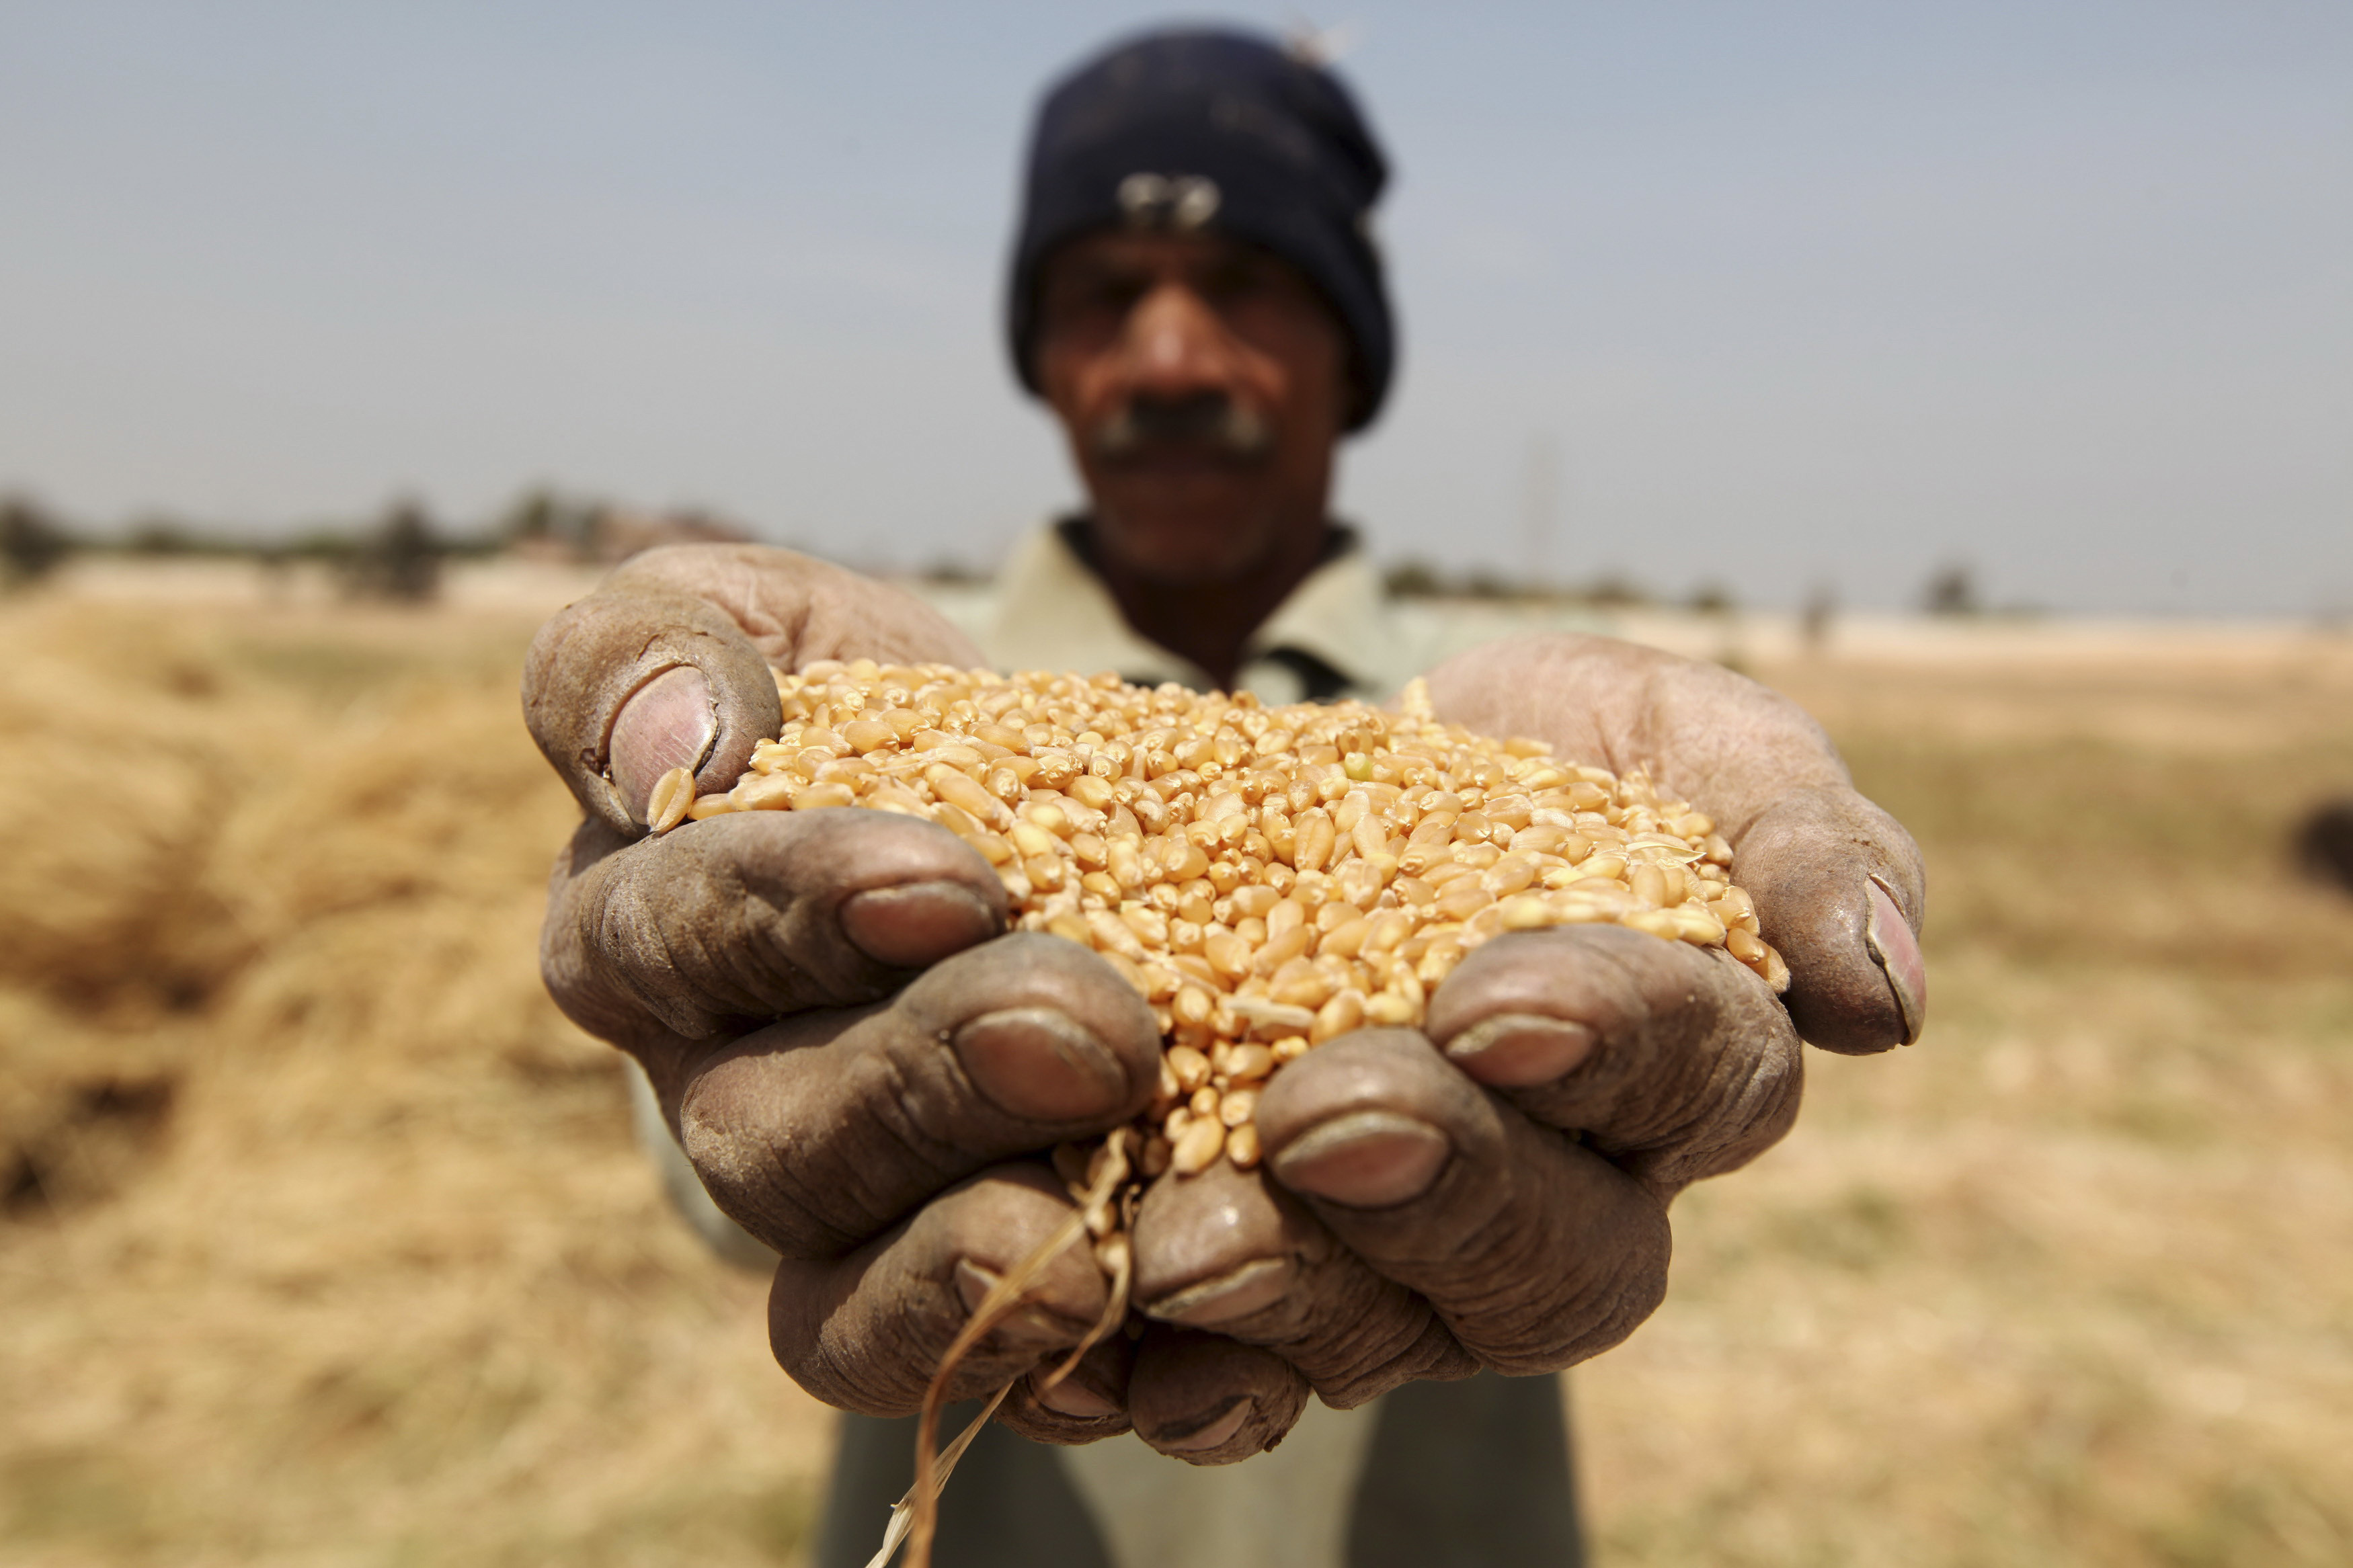 A farmer holds out grains of wheat in his hands during a harvest on a field in the El-Menoufia governorate, about 9.94 km (58 miles) north of Cairo April 23, 2013. Egypt's wheat crop will be close to 10 million tonnes this season, agriculture minister Salah Abdel Momen said on Sunday as the harvest gets underway, more than the supply minister's 9.5 million tonne forecast. Picture taken April 23, 2013. REUTERS/Mohamed Abd El Ghany (EGYPT - Tags: AGRICULTURE BUSINESS COMMODITIES) - GM1E94O1Q1D01